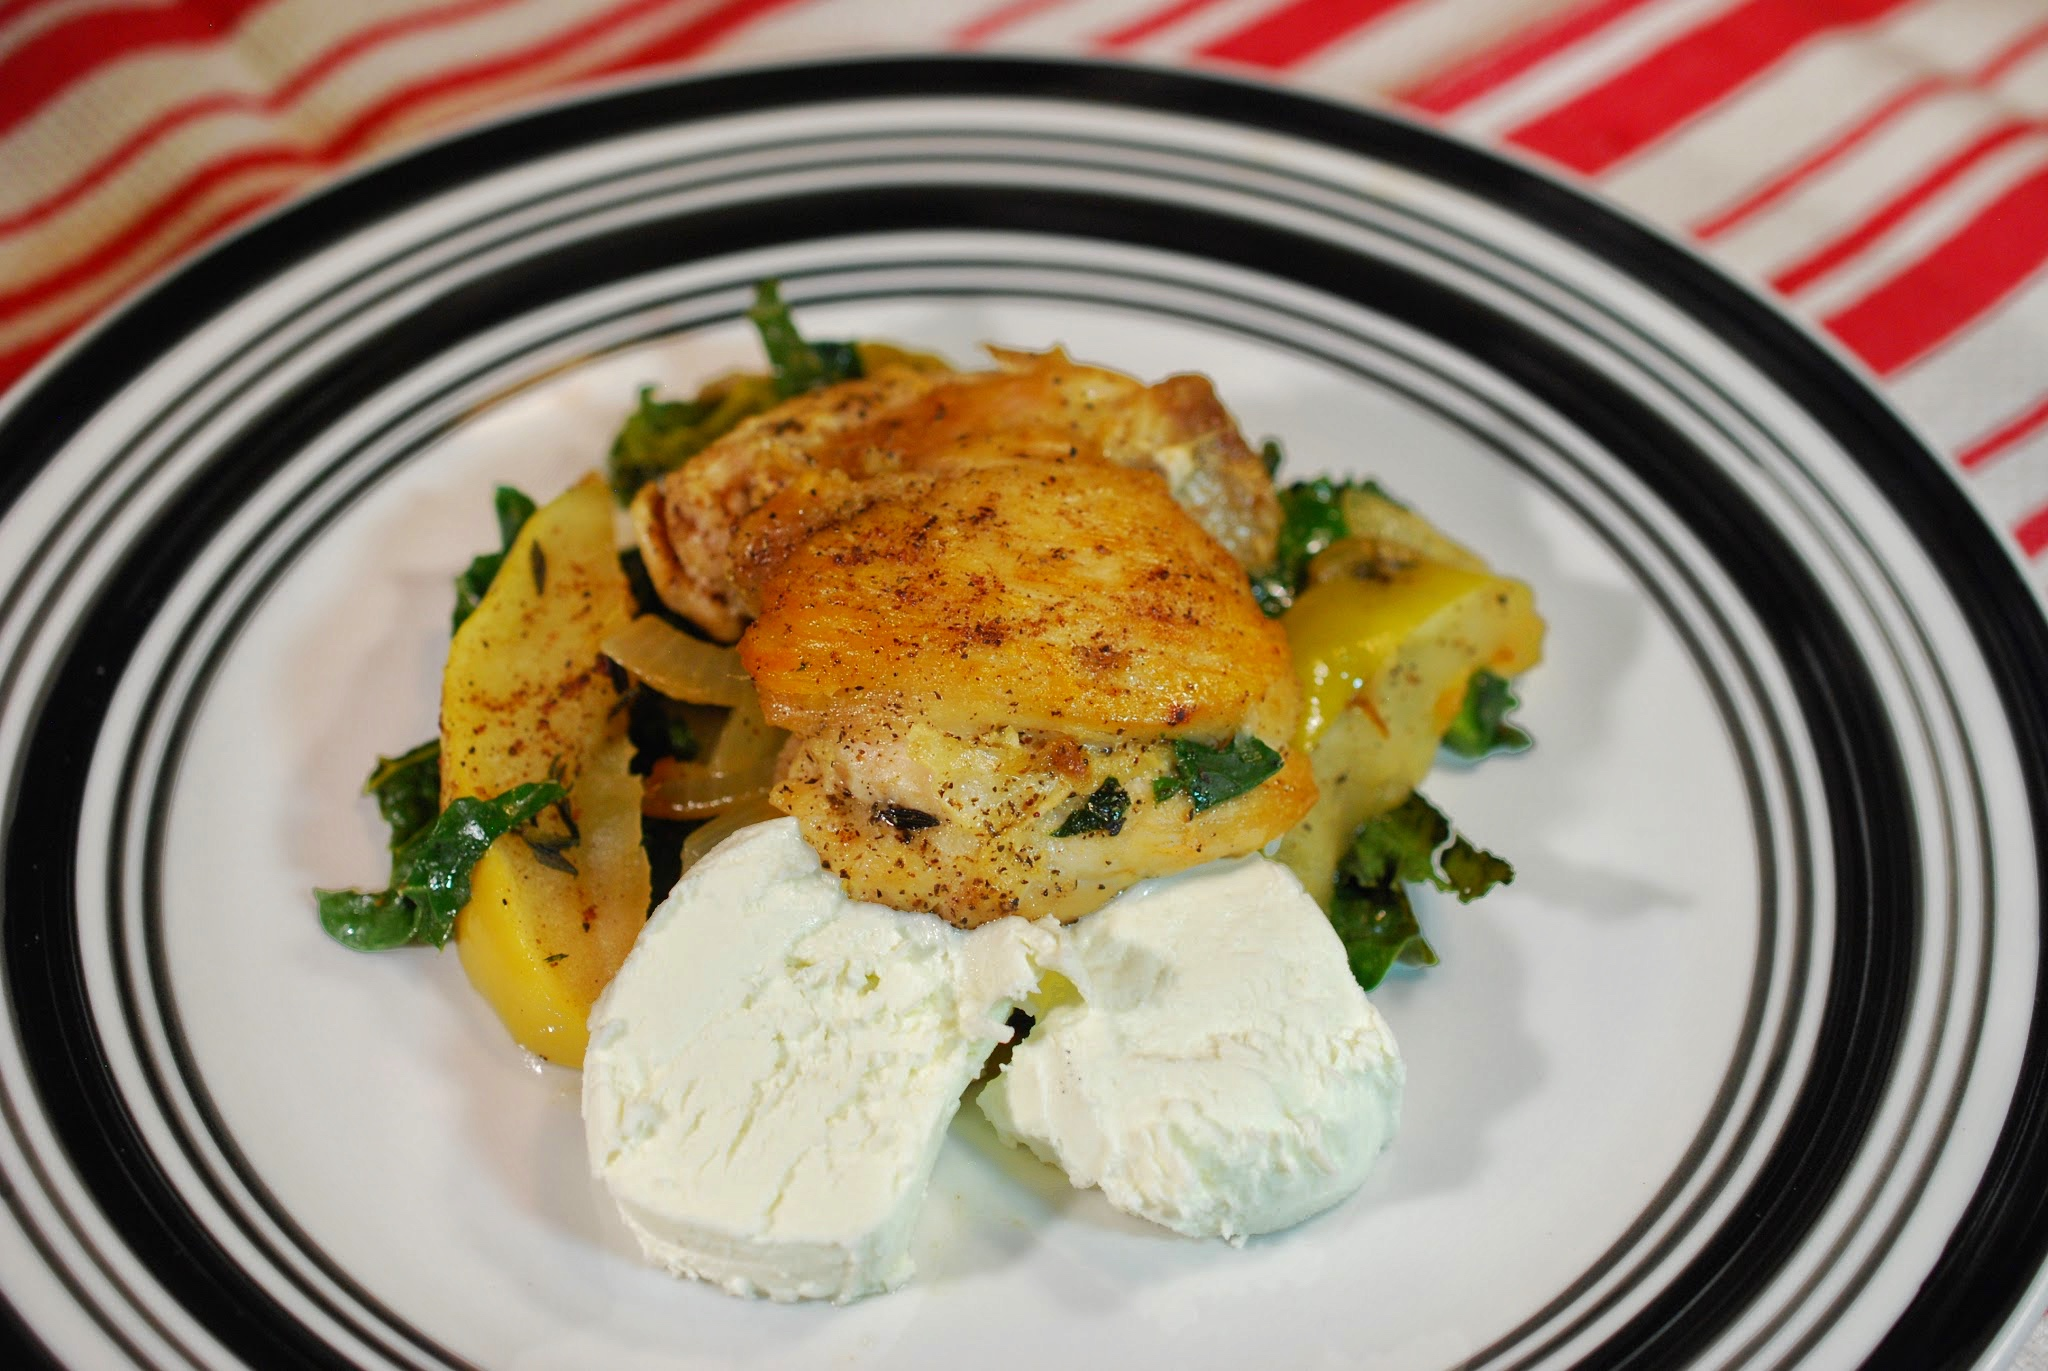 Chicken Thighs with Apples, Onions, Kale, and Goat Cheese